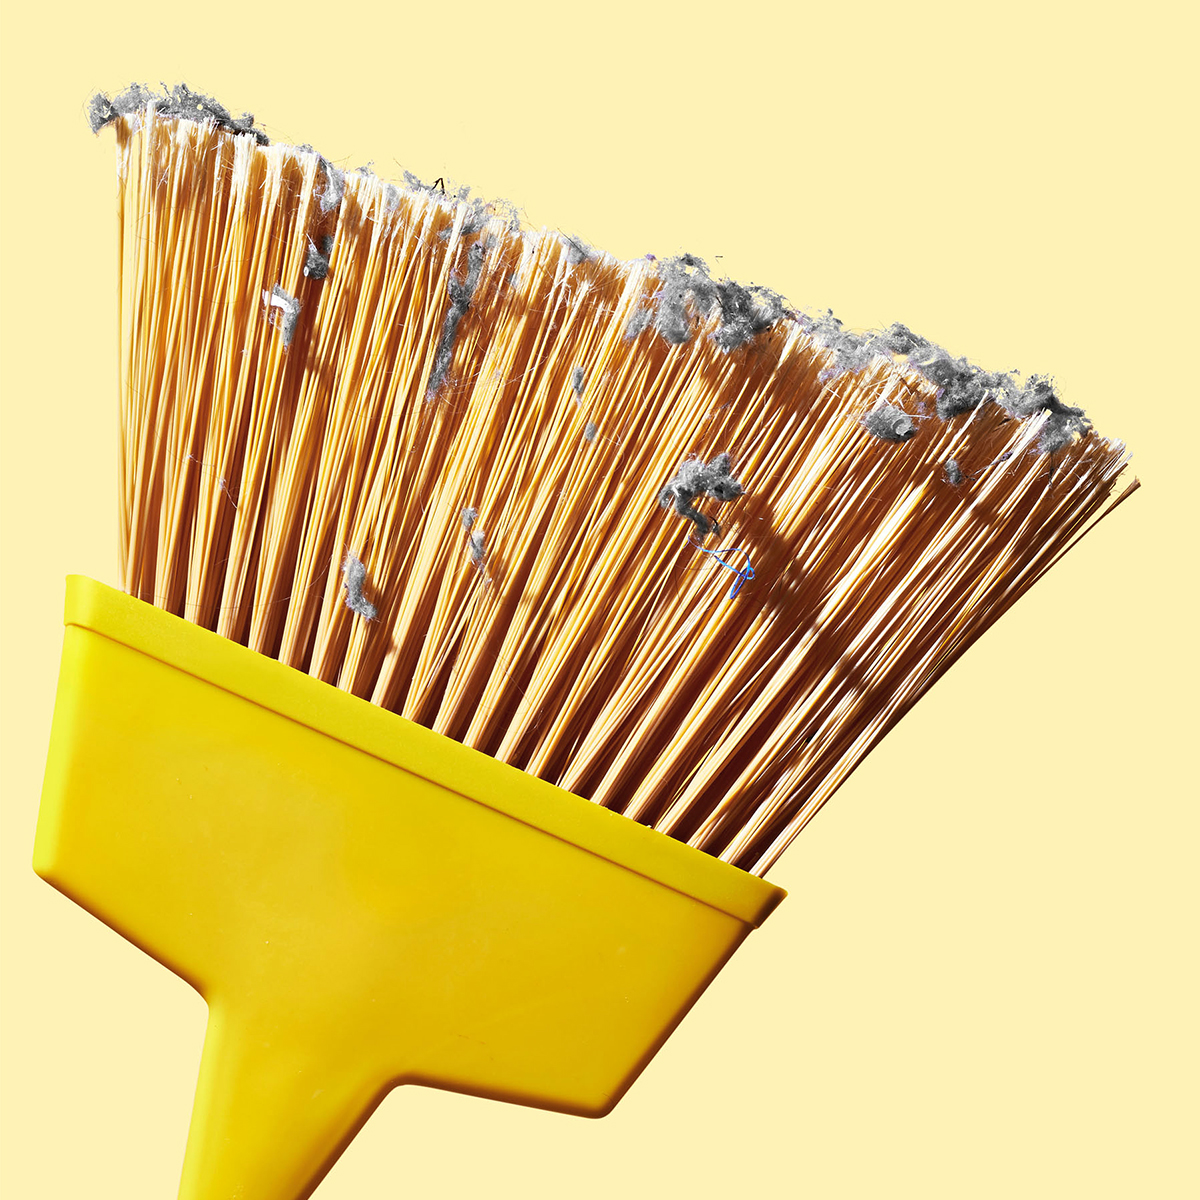 yellow broom with dust